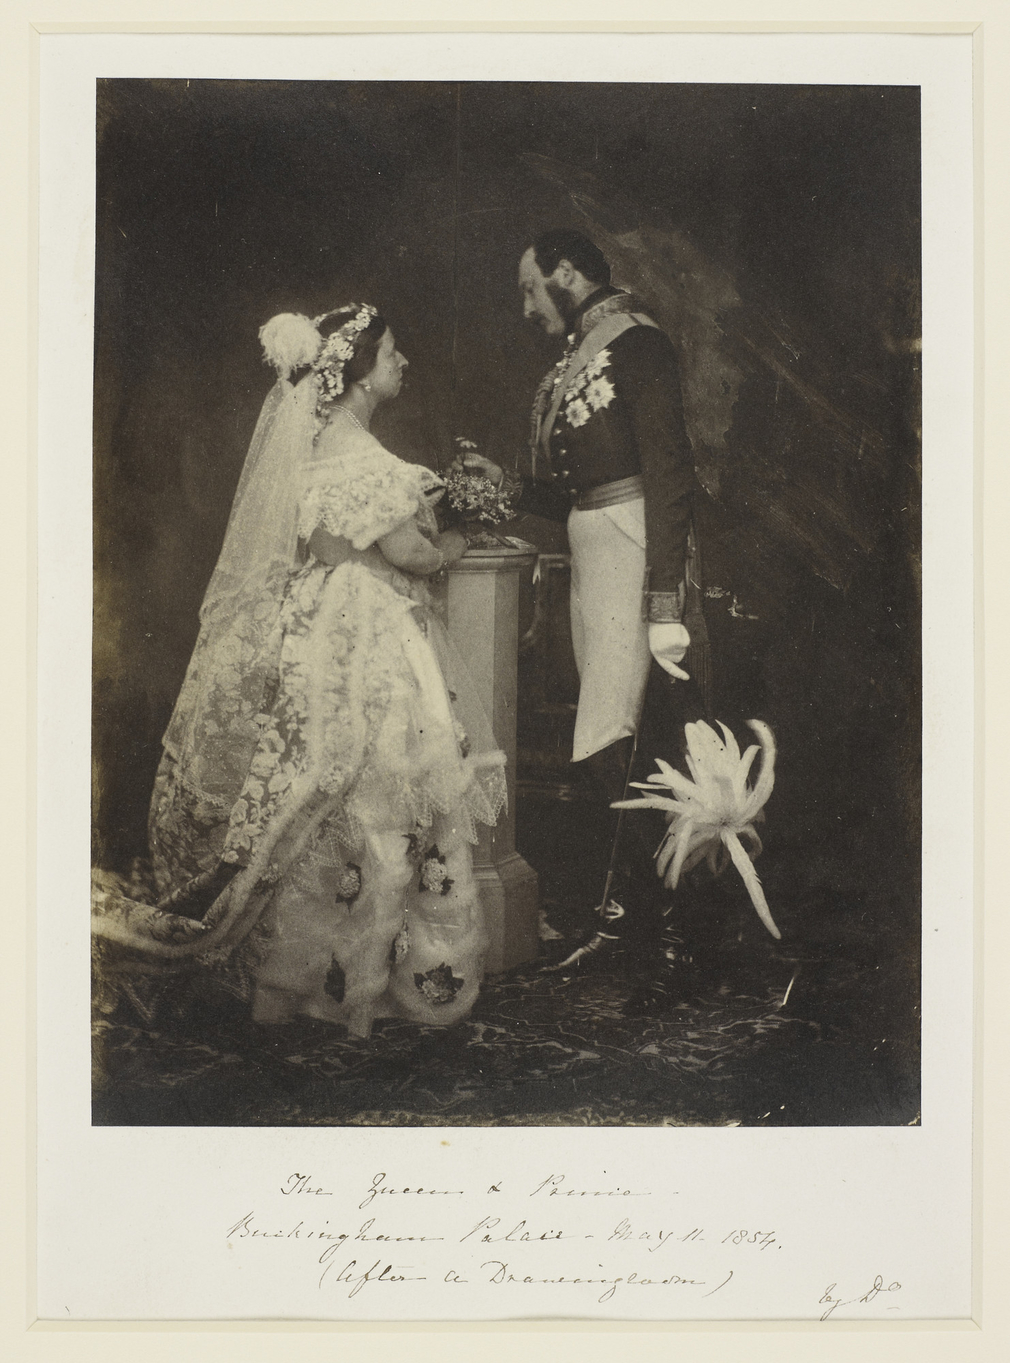 Photograph showing a full length portrait of Queen Victoria (1819-1901) and Prince Albert (1819-61). Queen Victoria stands in right side profile and wears formal court dress. Prince Albert stands in left side profile, holding a feathered hat in his left h